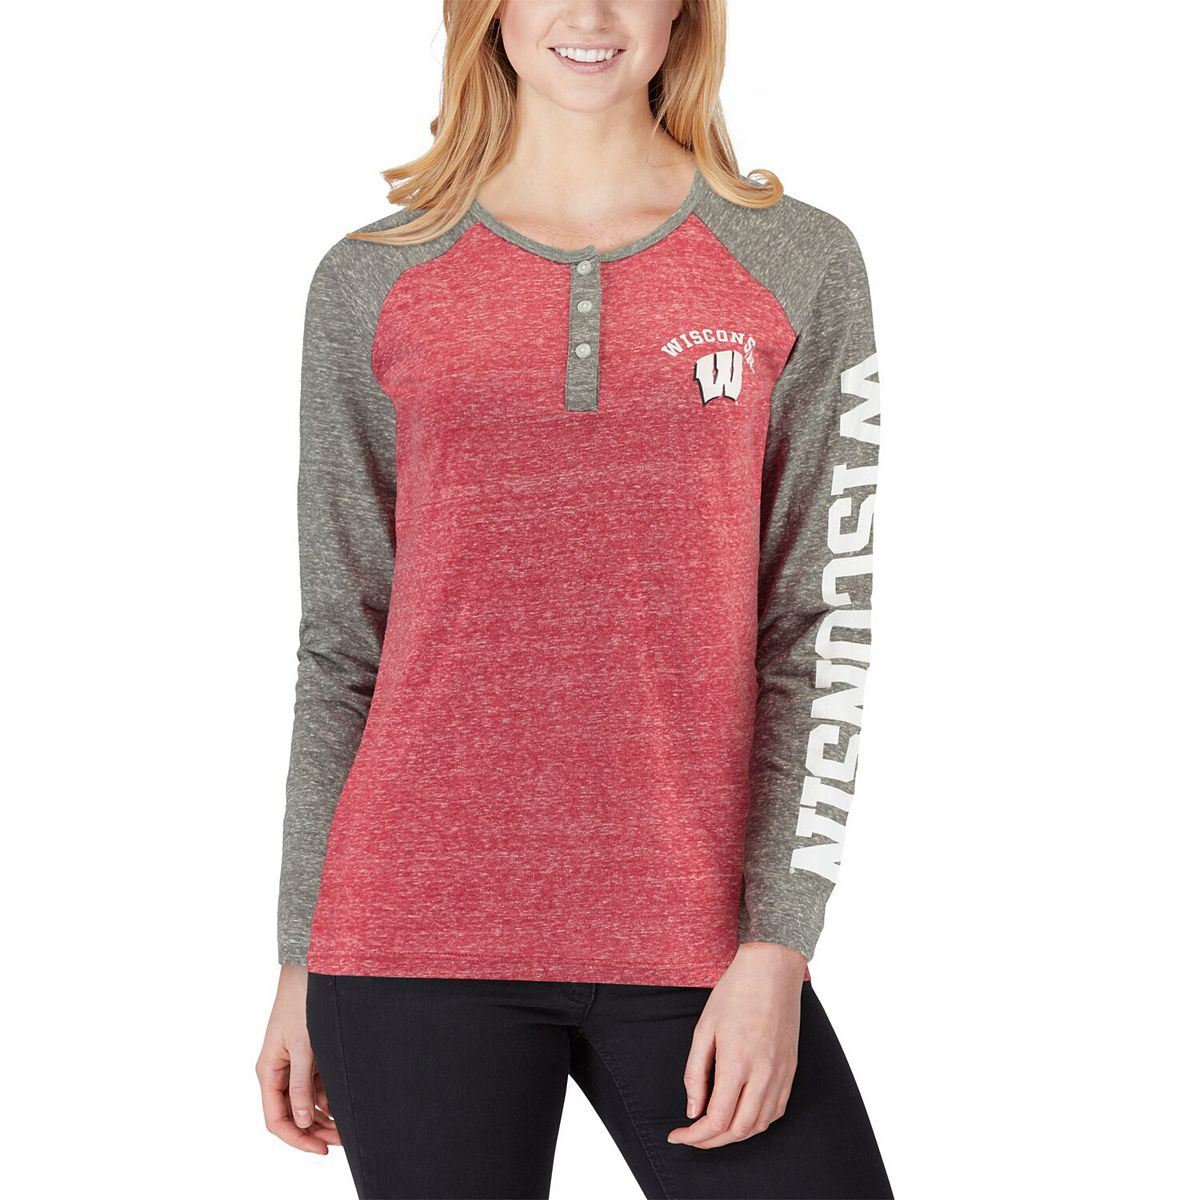 Women's Pressbox Red Wisconsin Badgers Avery Knobi Raglan Henley Tri-Blend Long Sleeve T-Shirt LvW1G